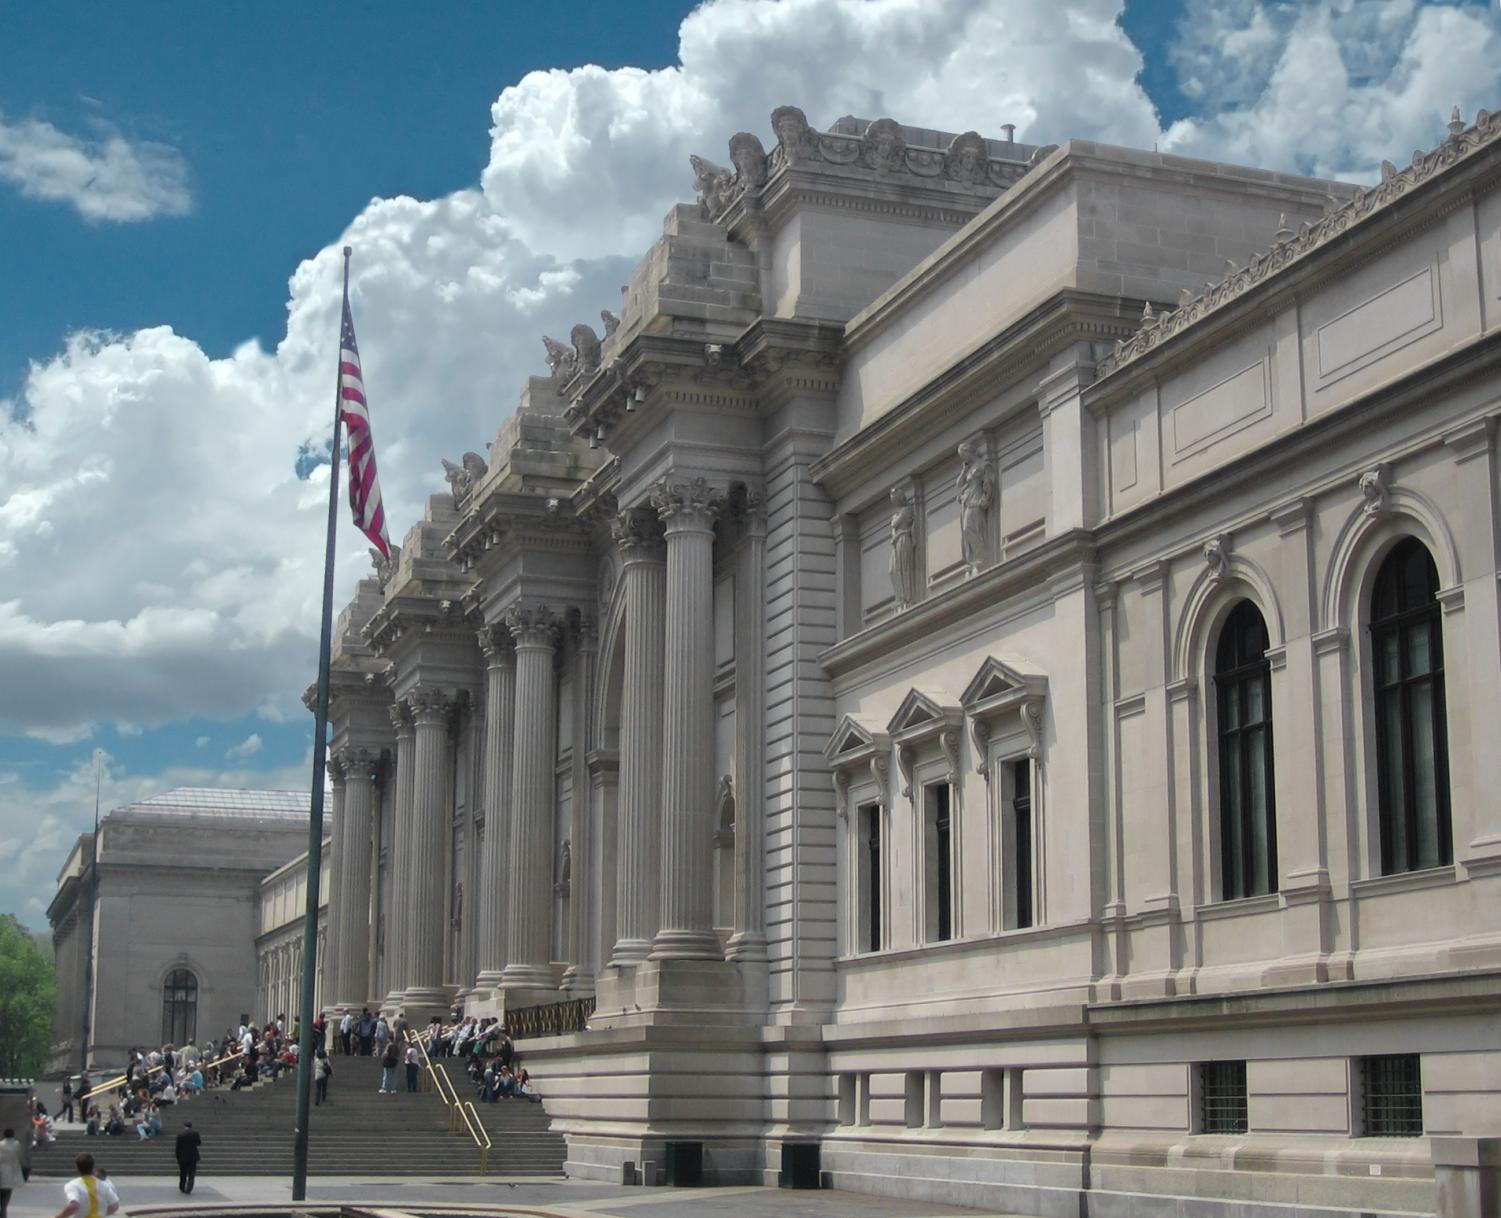 The Metropolitan Museum of Art in New York City is now charging out-of-state visitors for admission.